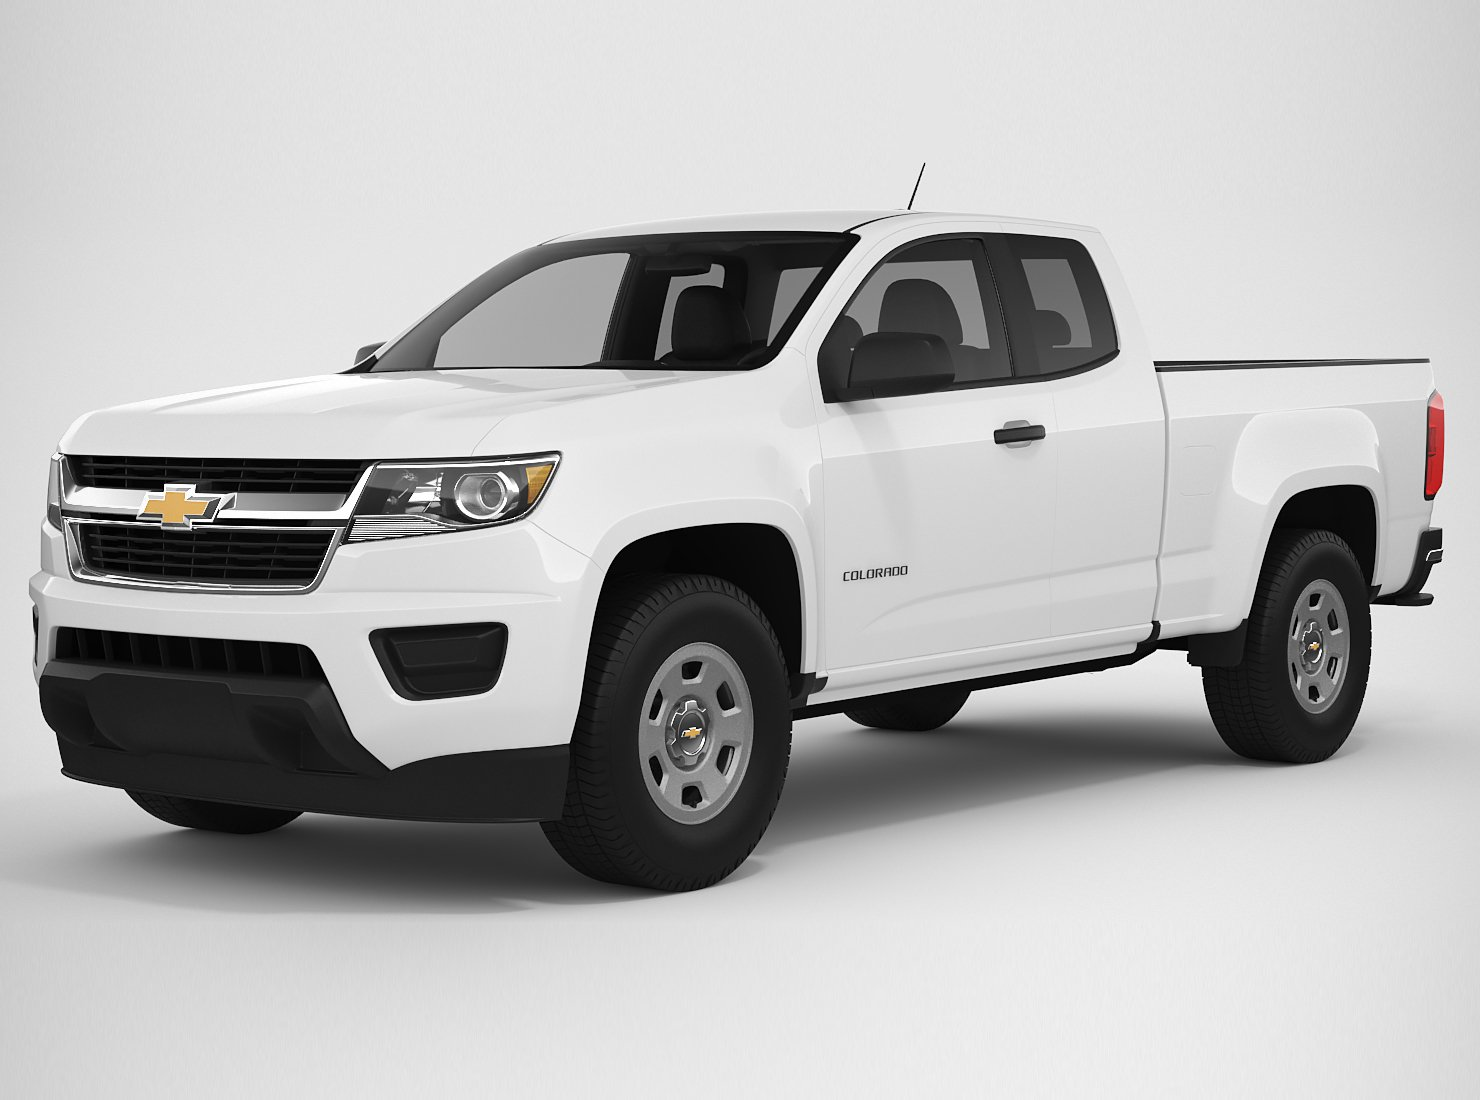 Chevrolet Colorado 2018 Extended Cab Modelo 3D in VUD 3DExport